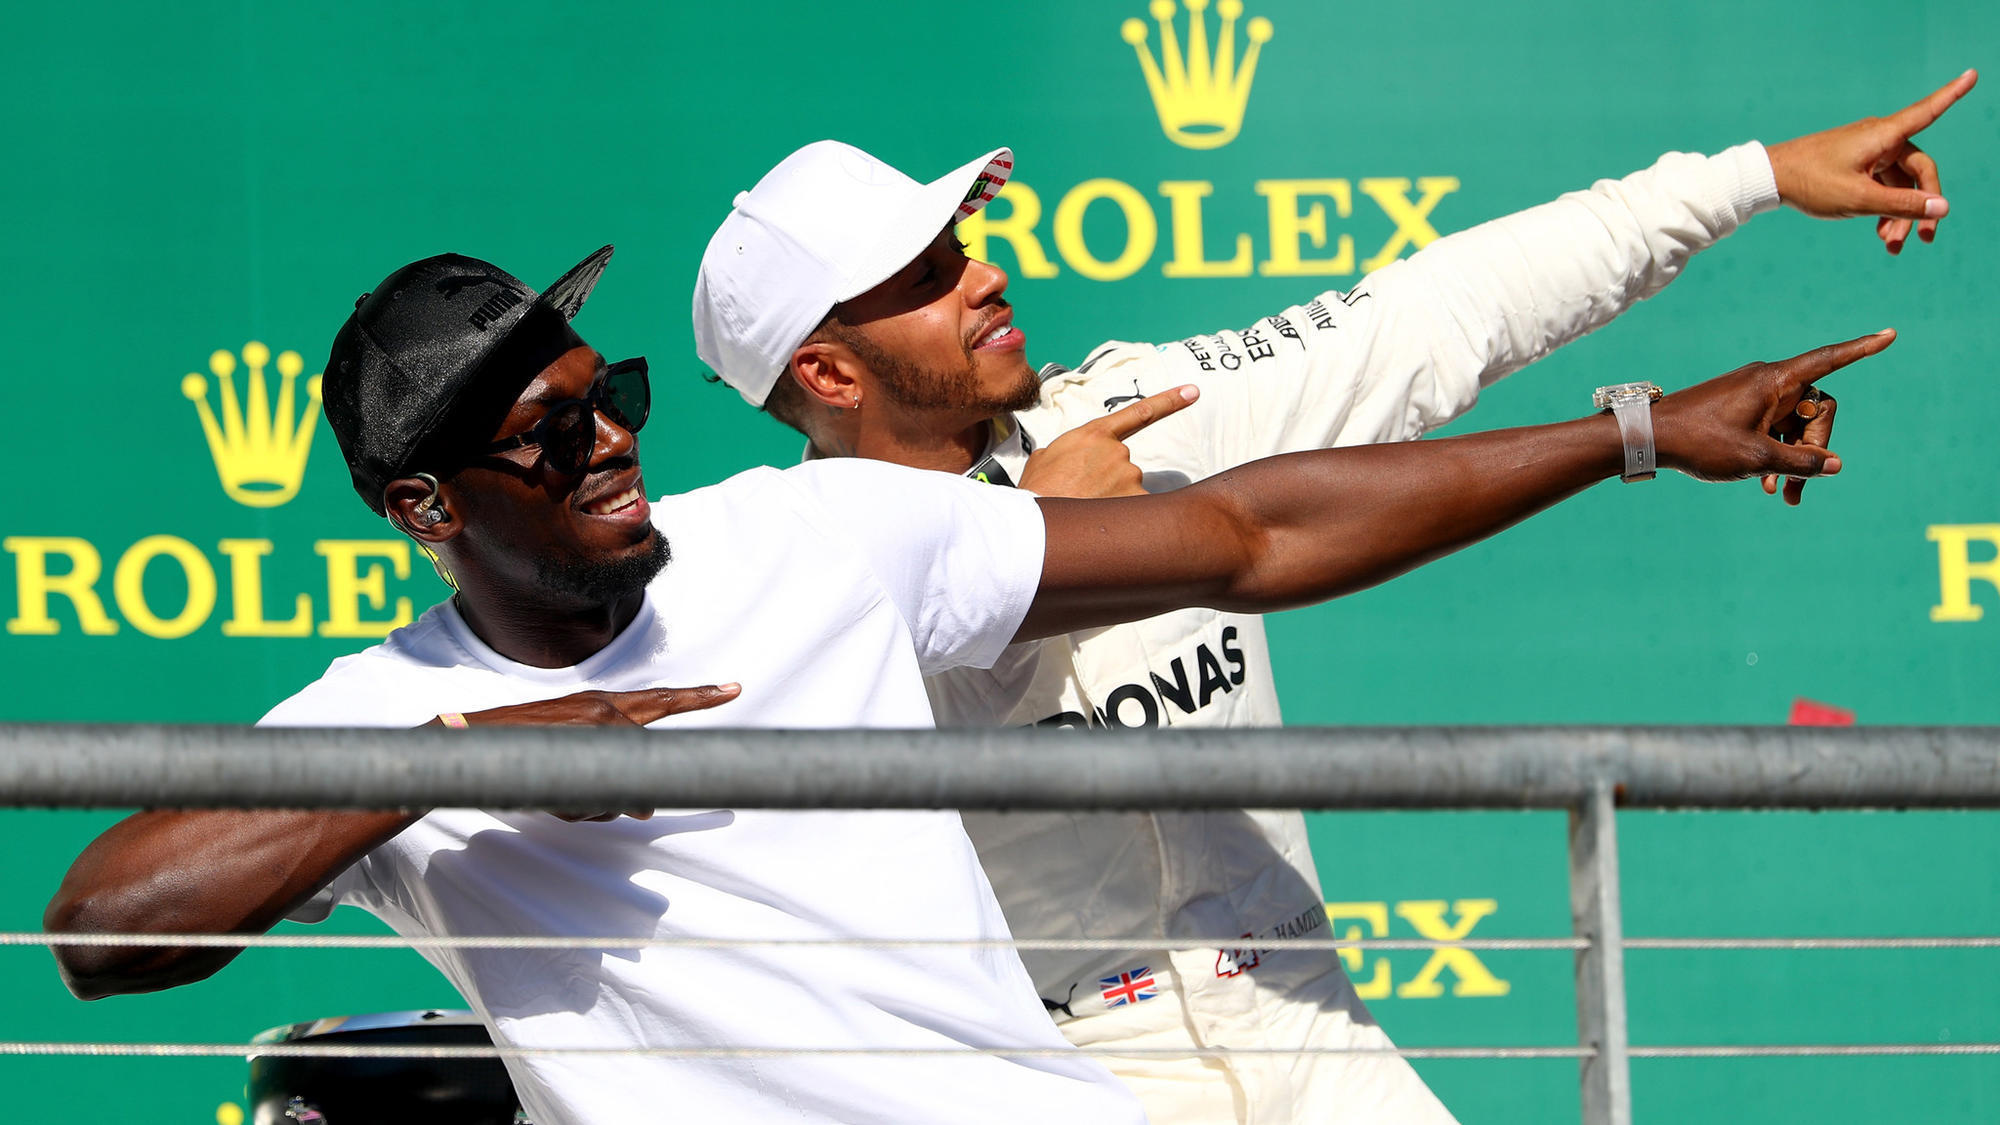 Lewis Hamilton extends Formula One lead with victory at U.S. Grand Prix